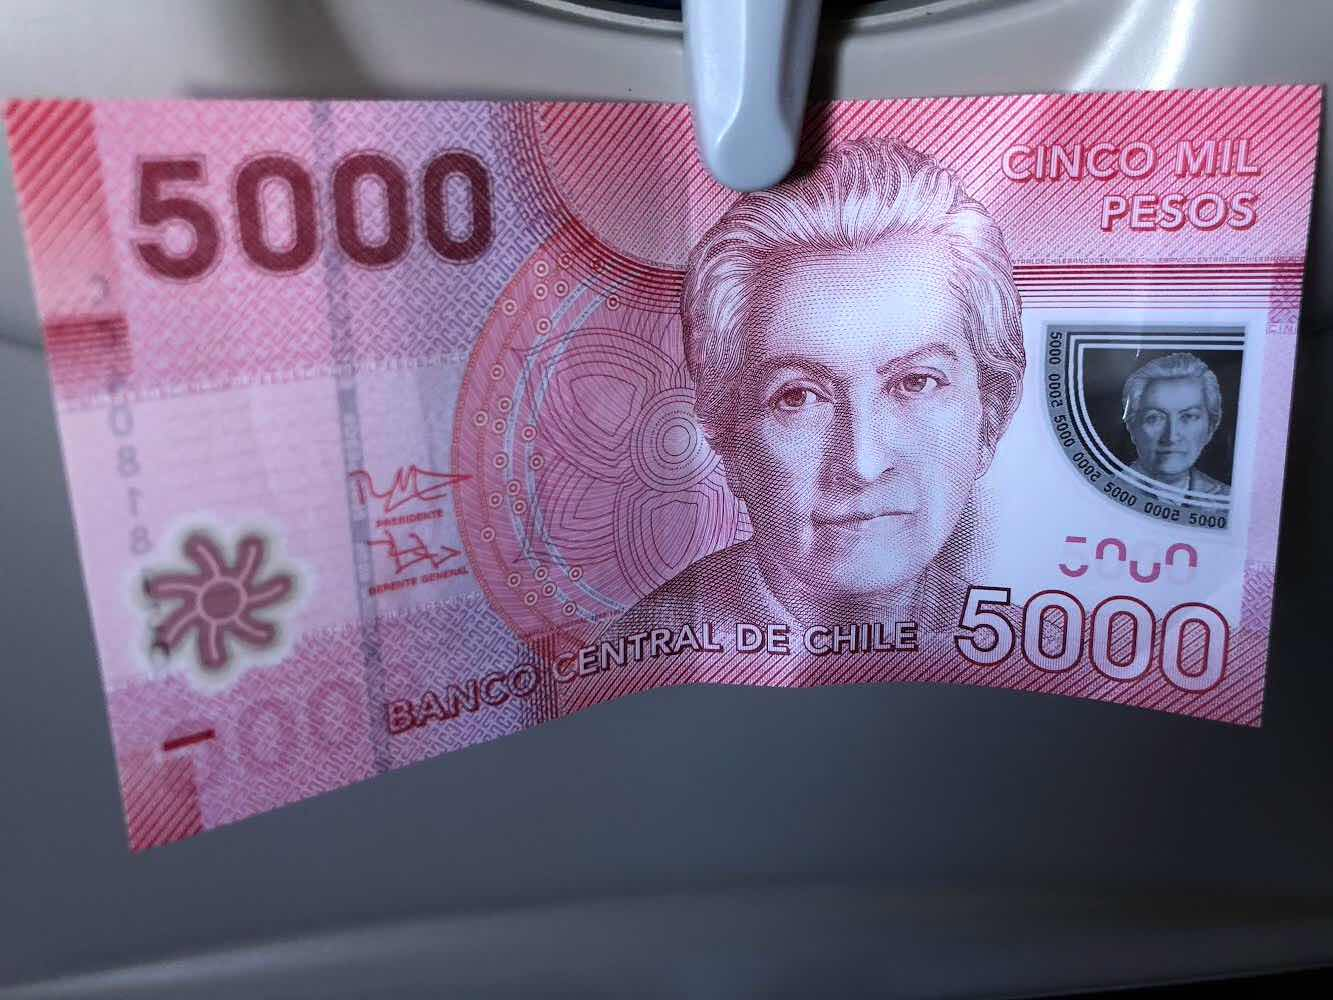 5000 peso Chilean note with Gabriela Mistral image in transparent section